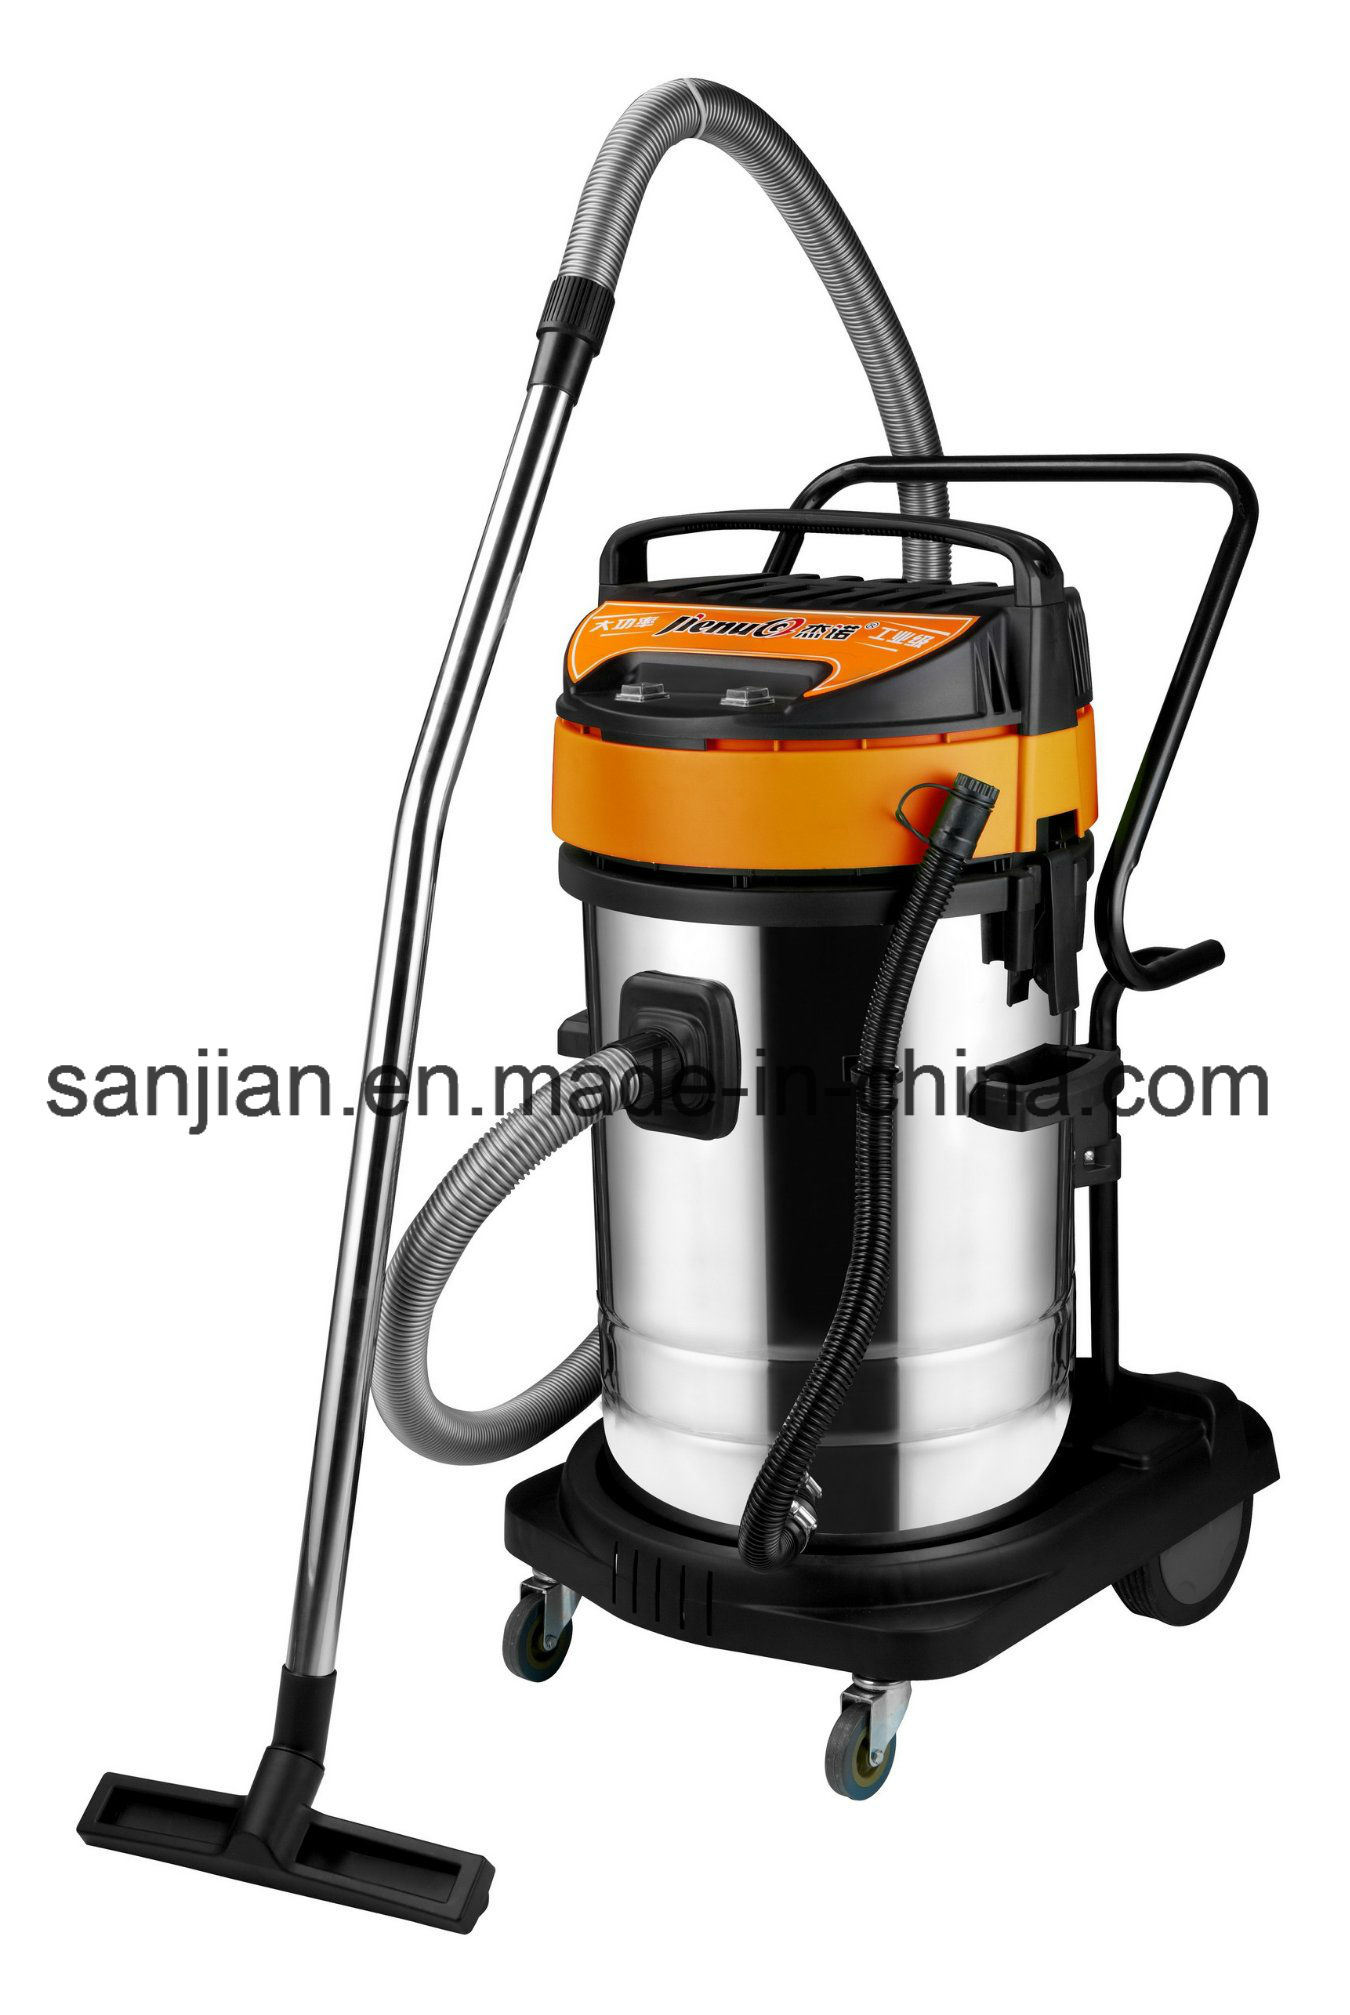 Carpet Cleaning Vacuum Hot Item Jn301 70l 80l Carpet Cleaner Industrial Vacuum Cleaner